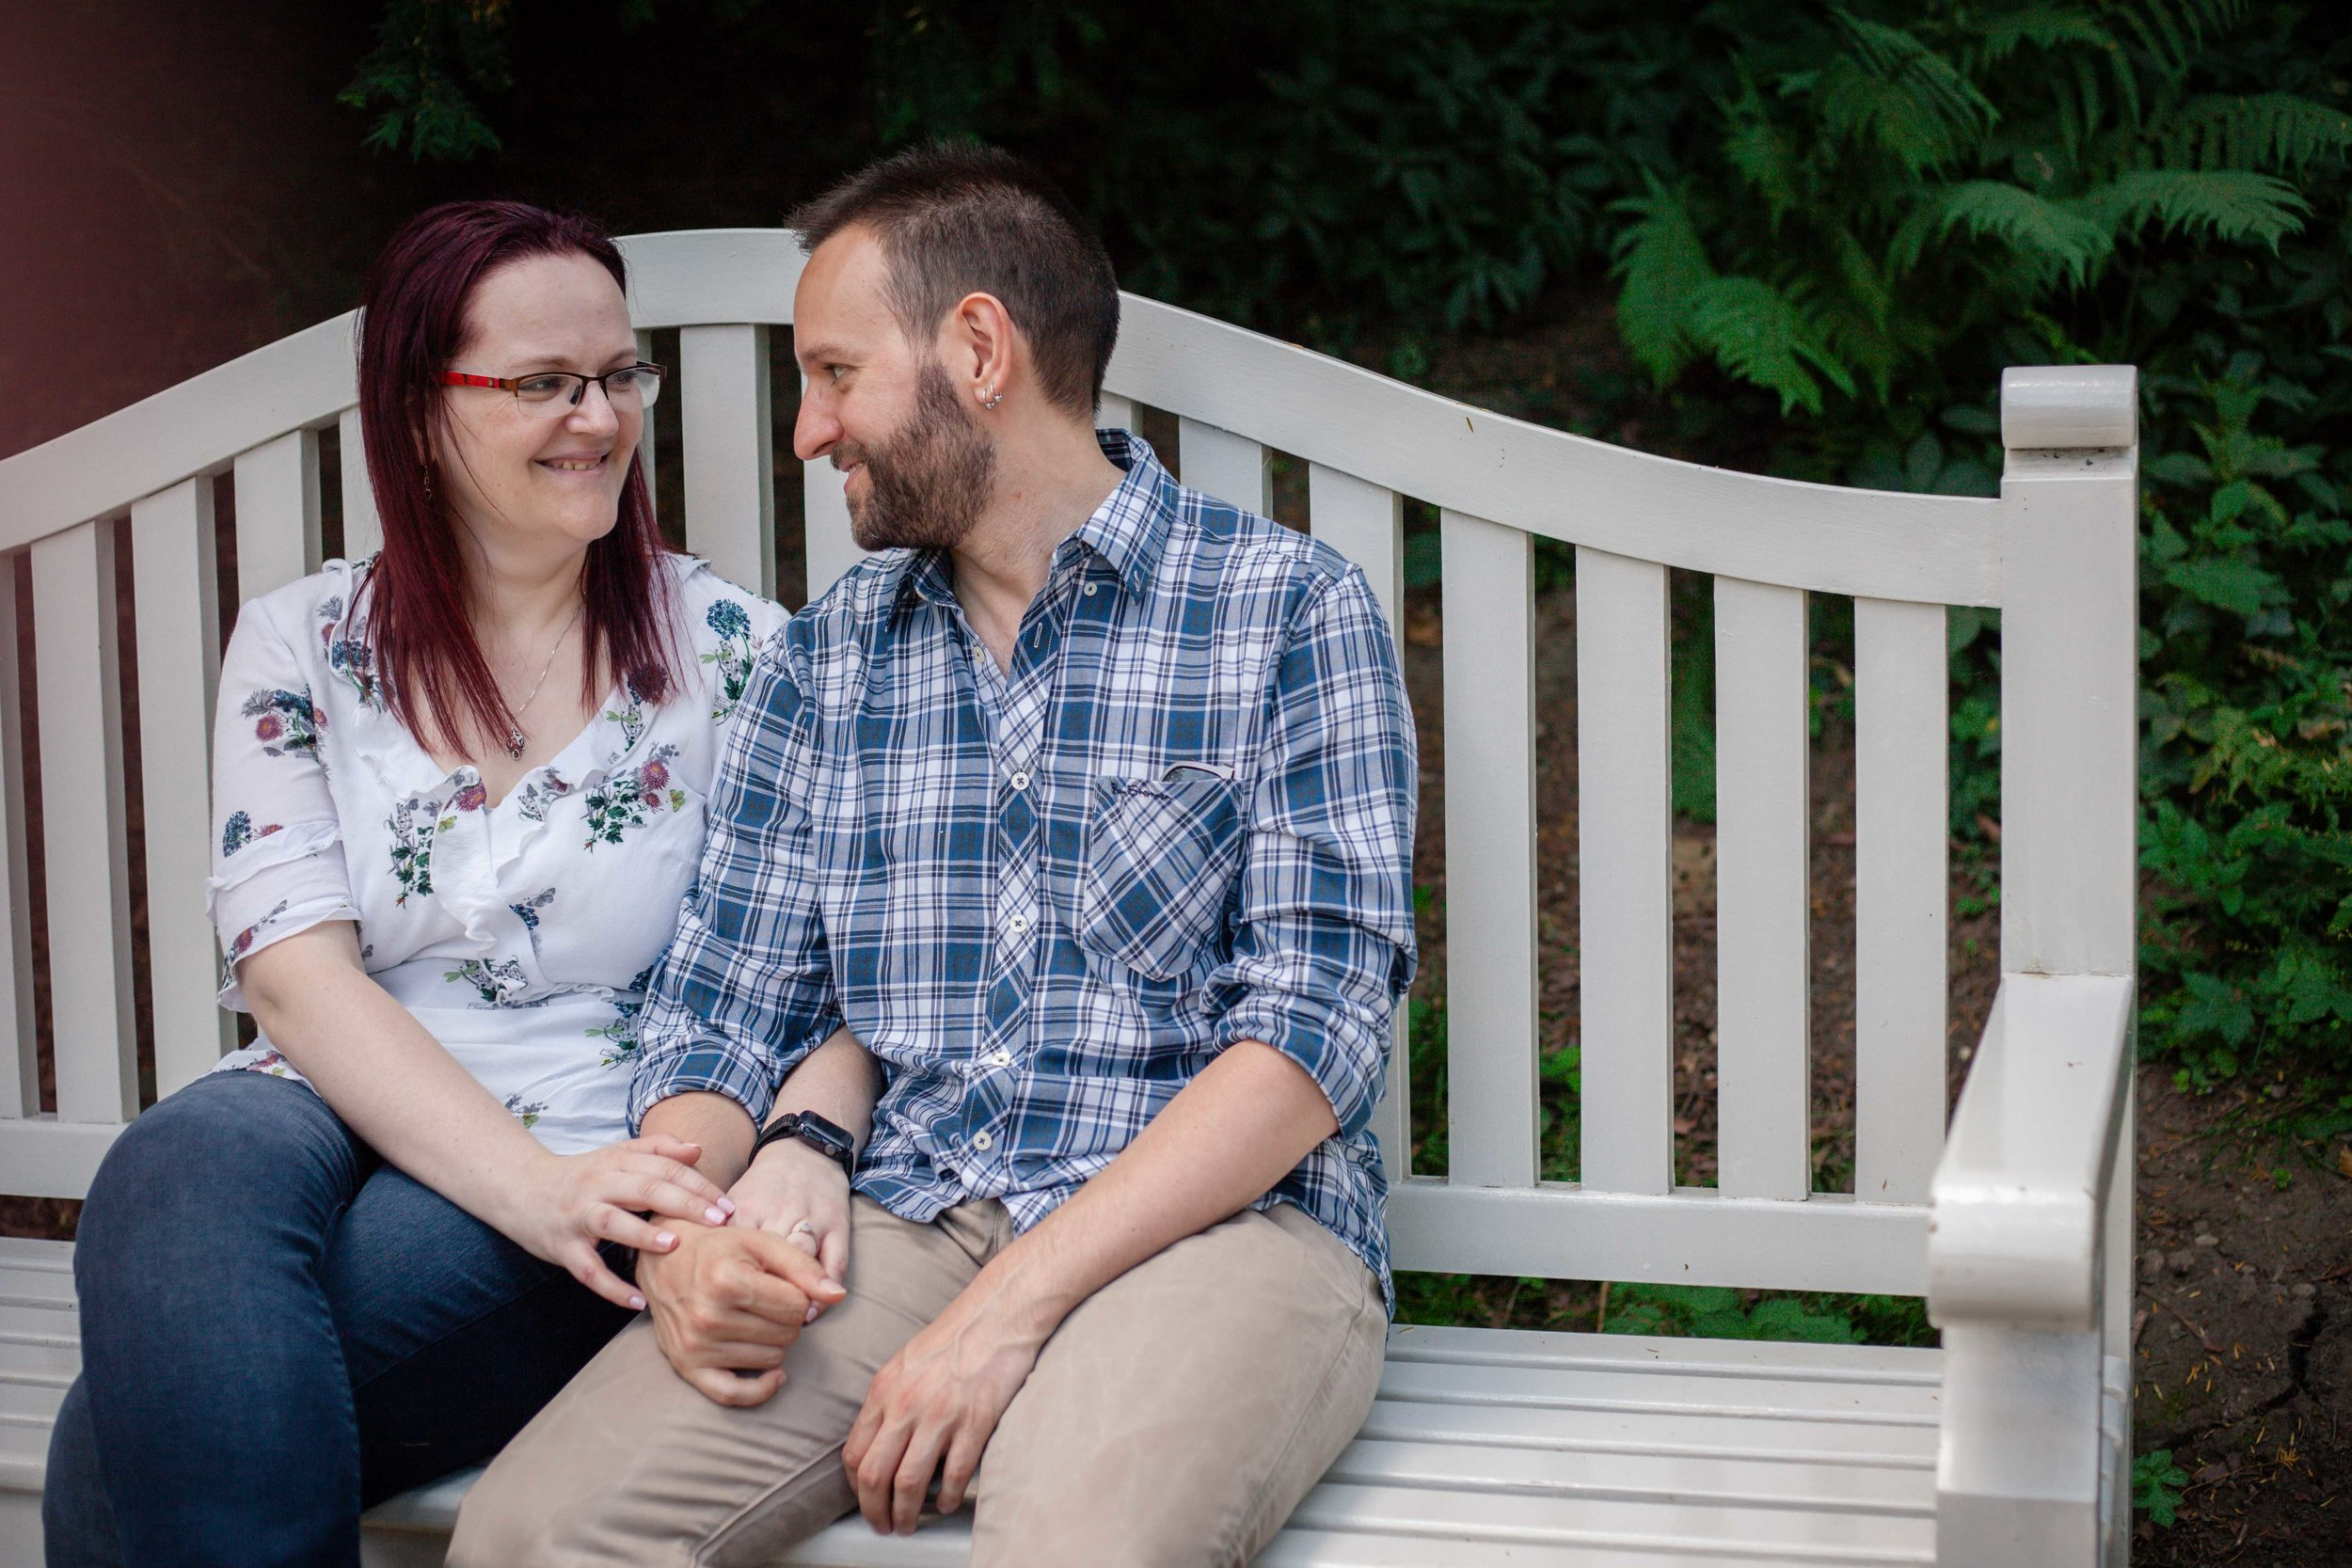 2018-07-14 - Tom and Kirsty Engagement-47.jpg